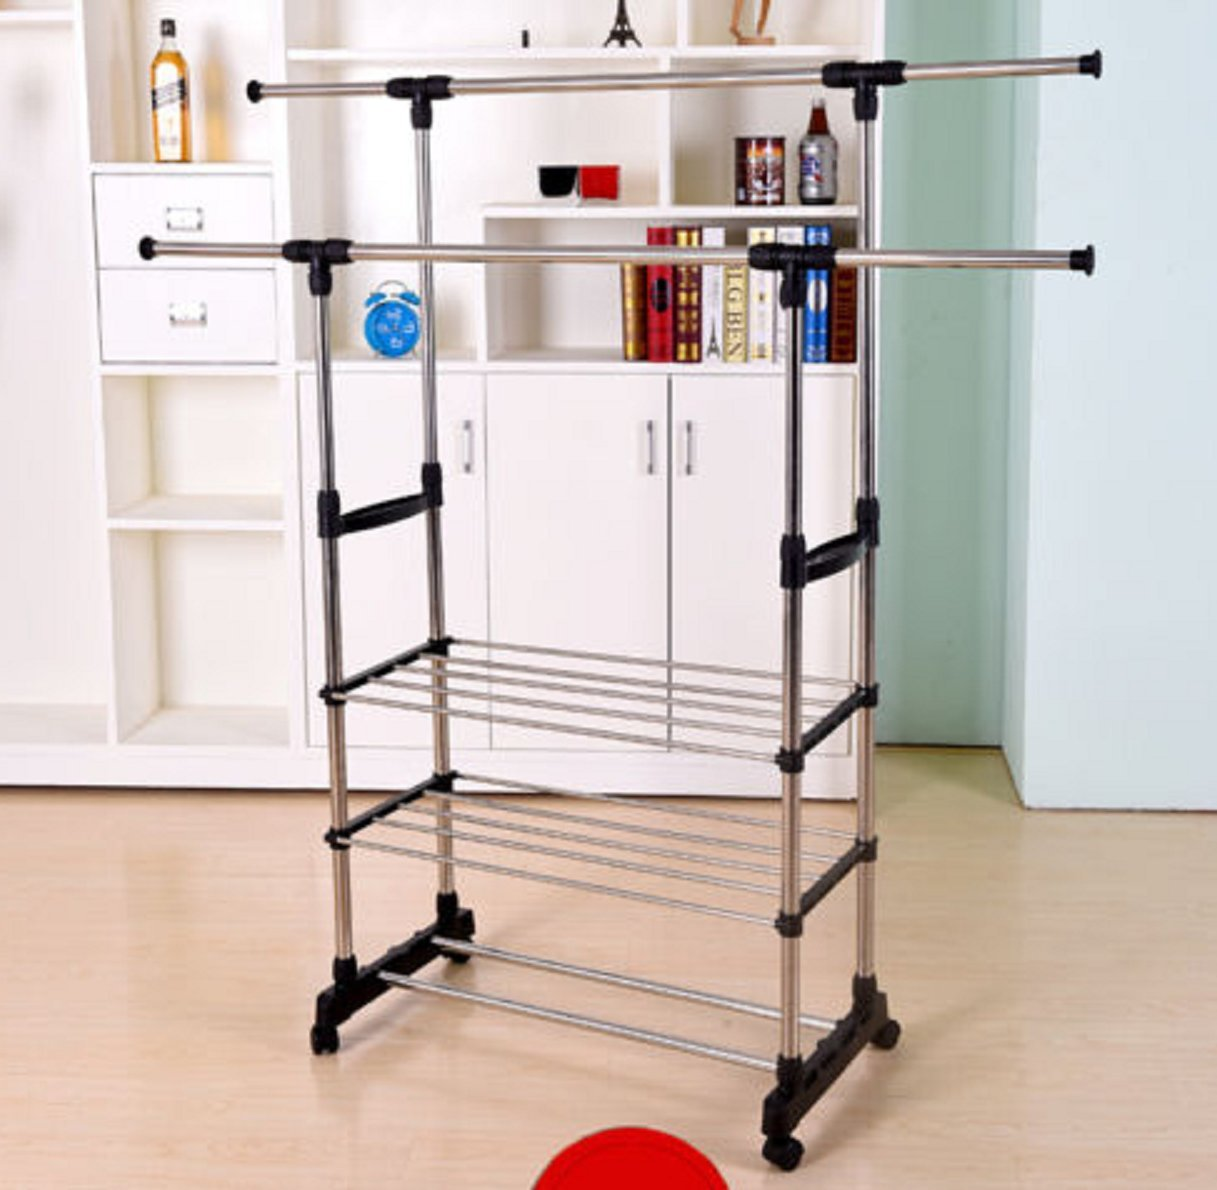 Clothing Rack Adjustable Double Bar Collapsible Wheels Duty Heavy Tier Rack Hanger by Brother123shop